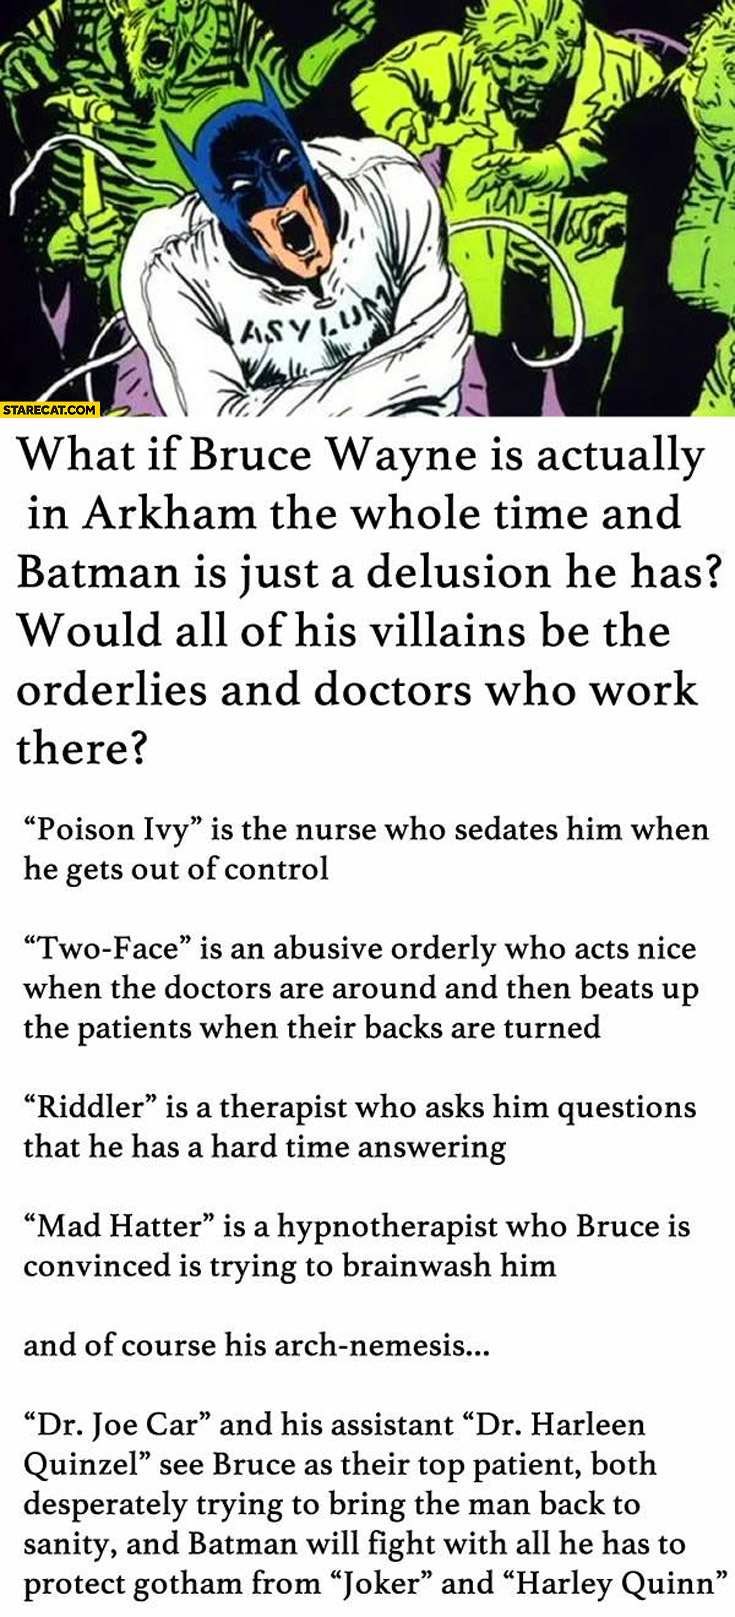 What if Bruce Wayne is actually in Arkham the whole time and Batman is just a delusion he has?